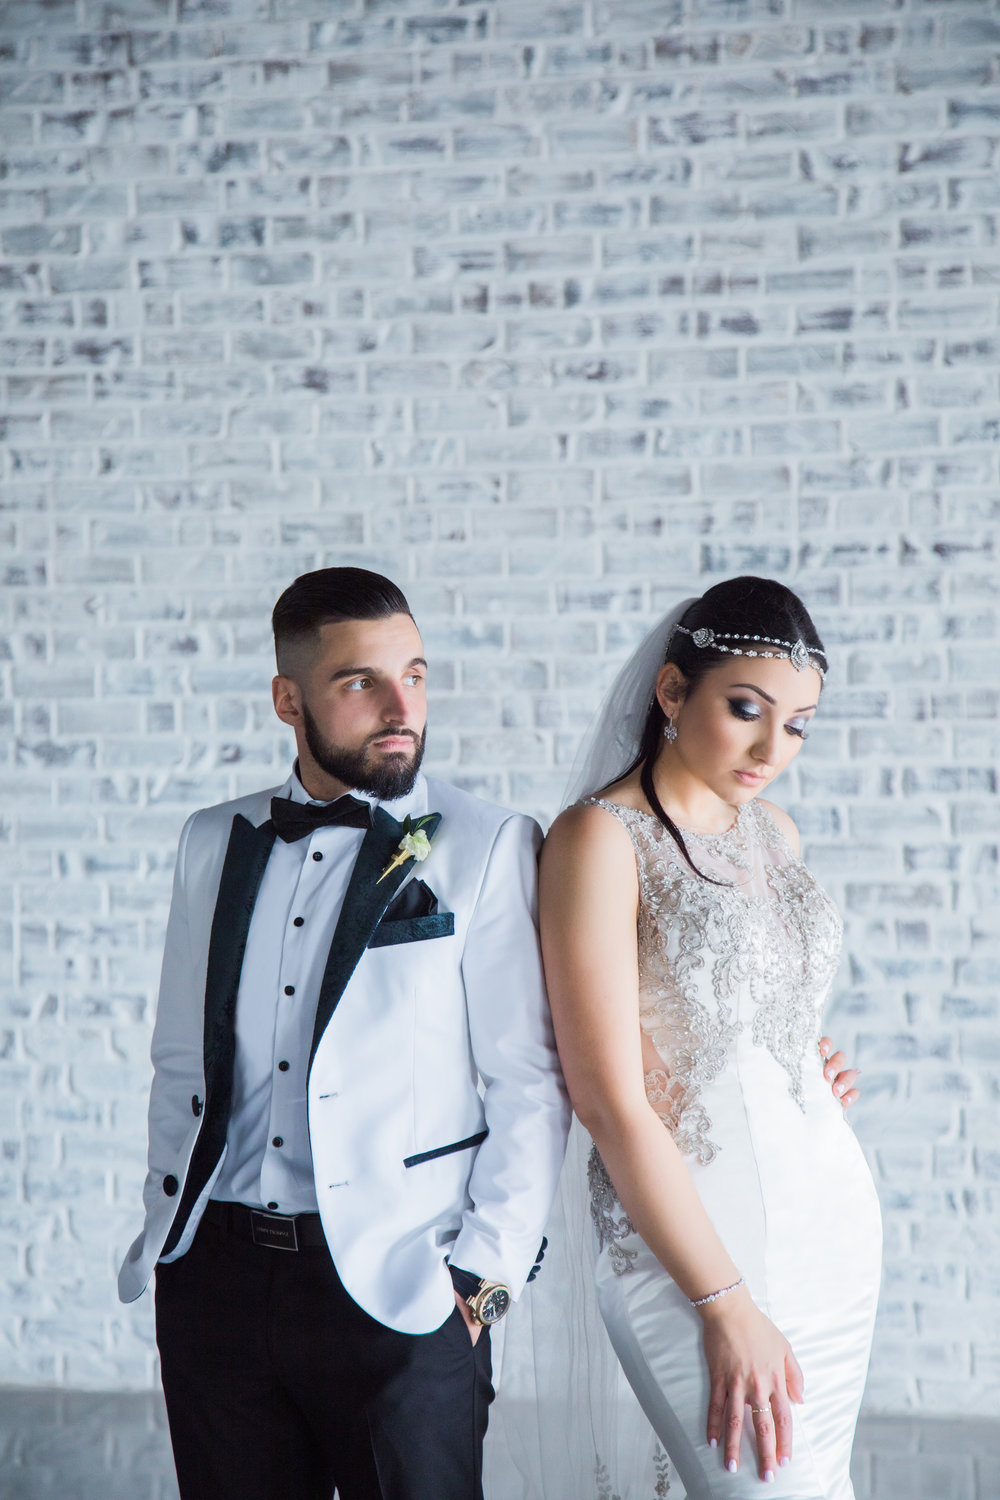 Wedding Bride Groom Gown Tuxedo